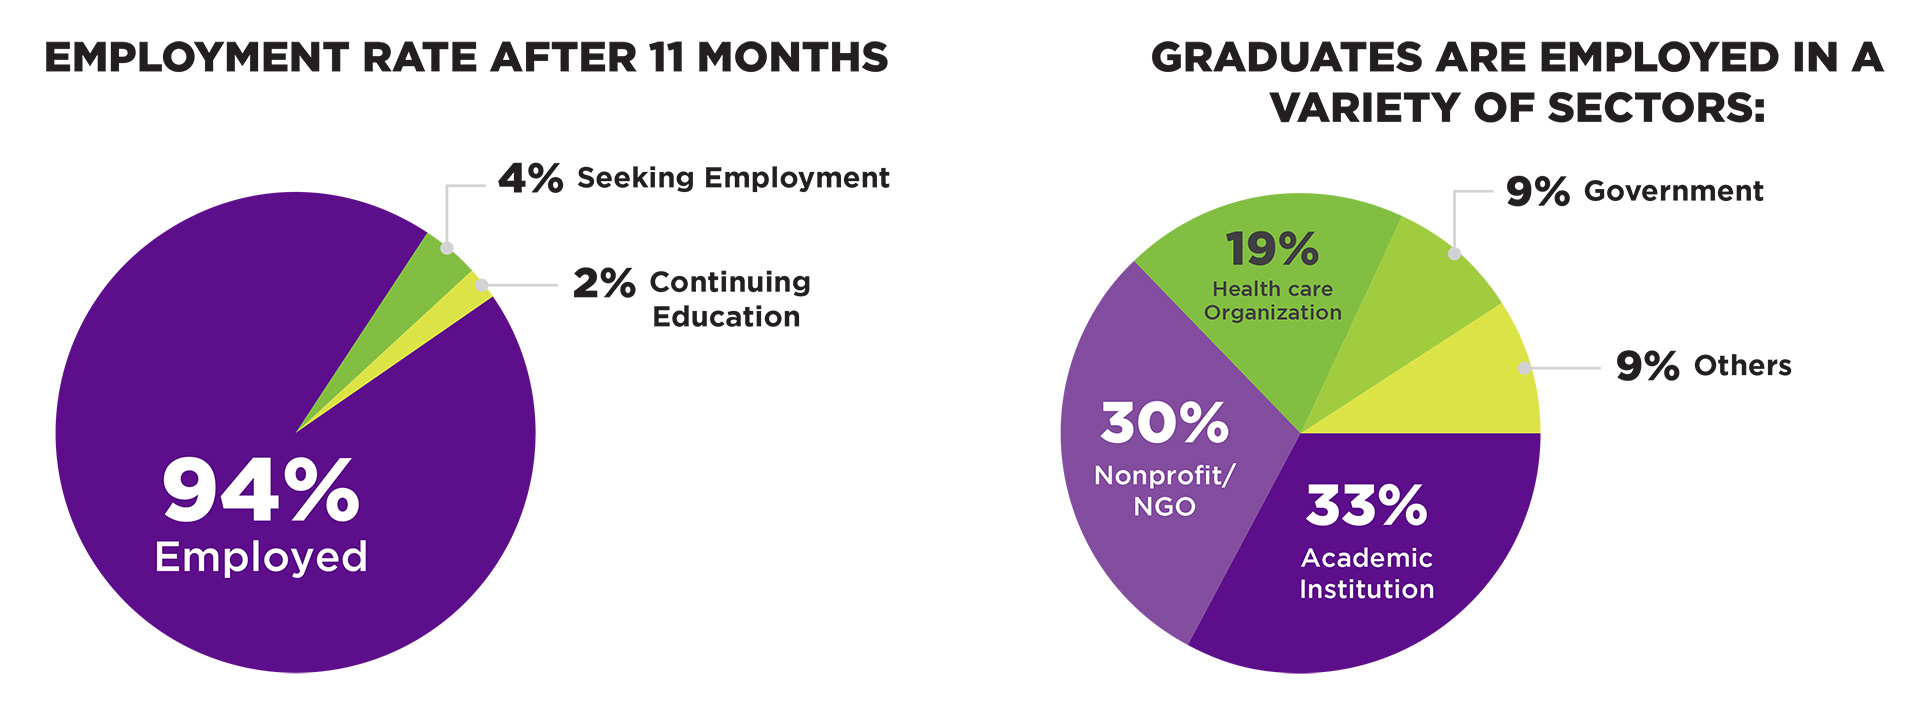 EMPLOYMENT RATE AFTER 11 MONTHS; GRADUATES ARE EMPLOYED IN A VARIETY OF SECTORS